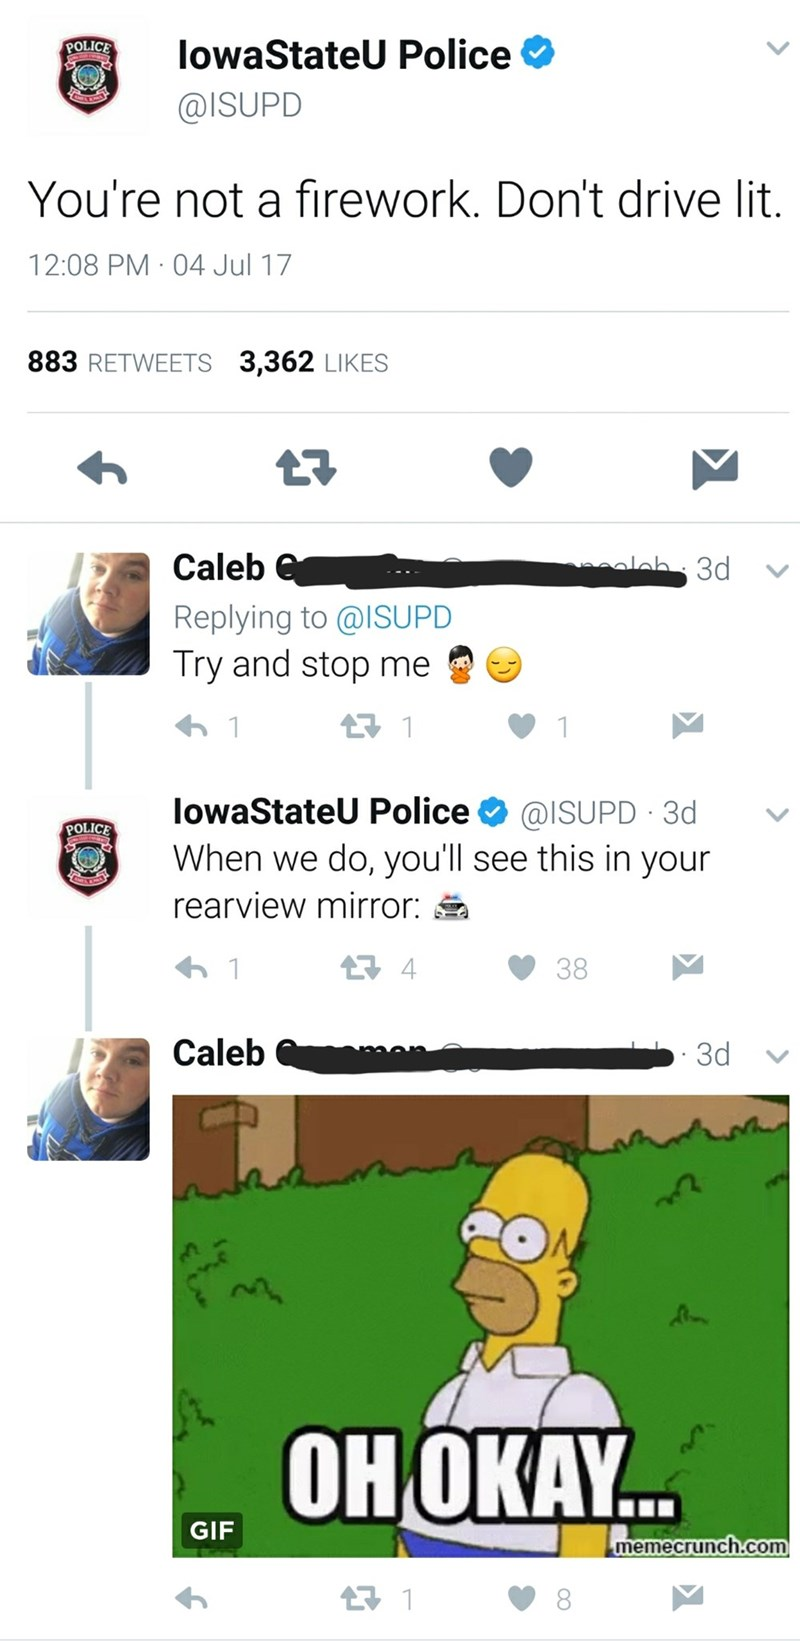 Text - POLICE lowaStateU Police @ISUPD You're not a firework. Don't drive lit. 12:08 PM 04 Jul 17 883 RETWEETS 3,362 LIKES Caleb e 3d Replying to @ISUPD Try and stop me 1 1 lowaStateU Police @ISUPD 3d POLICE When we do, you'll see this in your rearview mirror: t4 38 1 Caleb 3d OHOKAY... GIF memecrunch.com 1